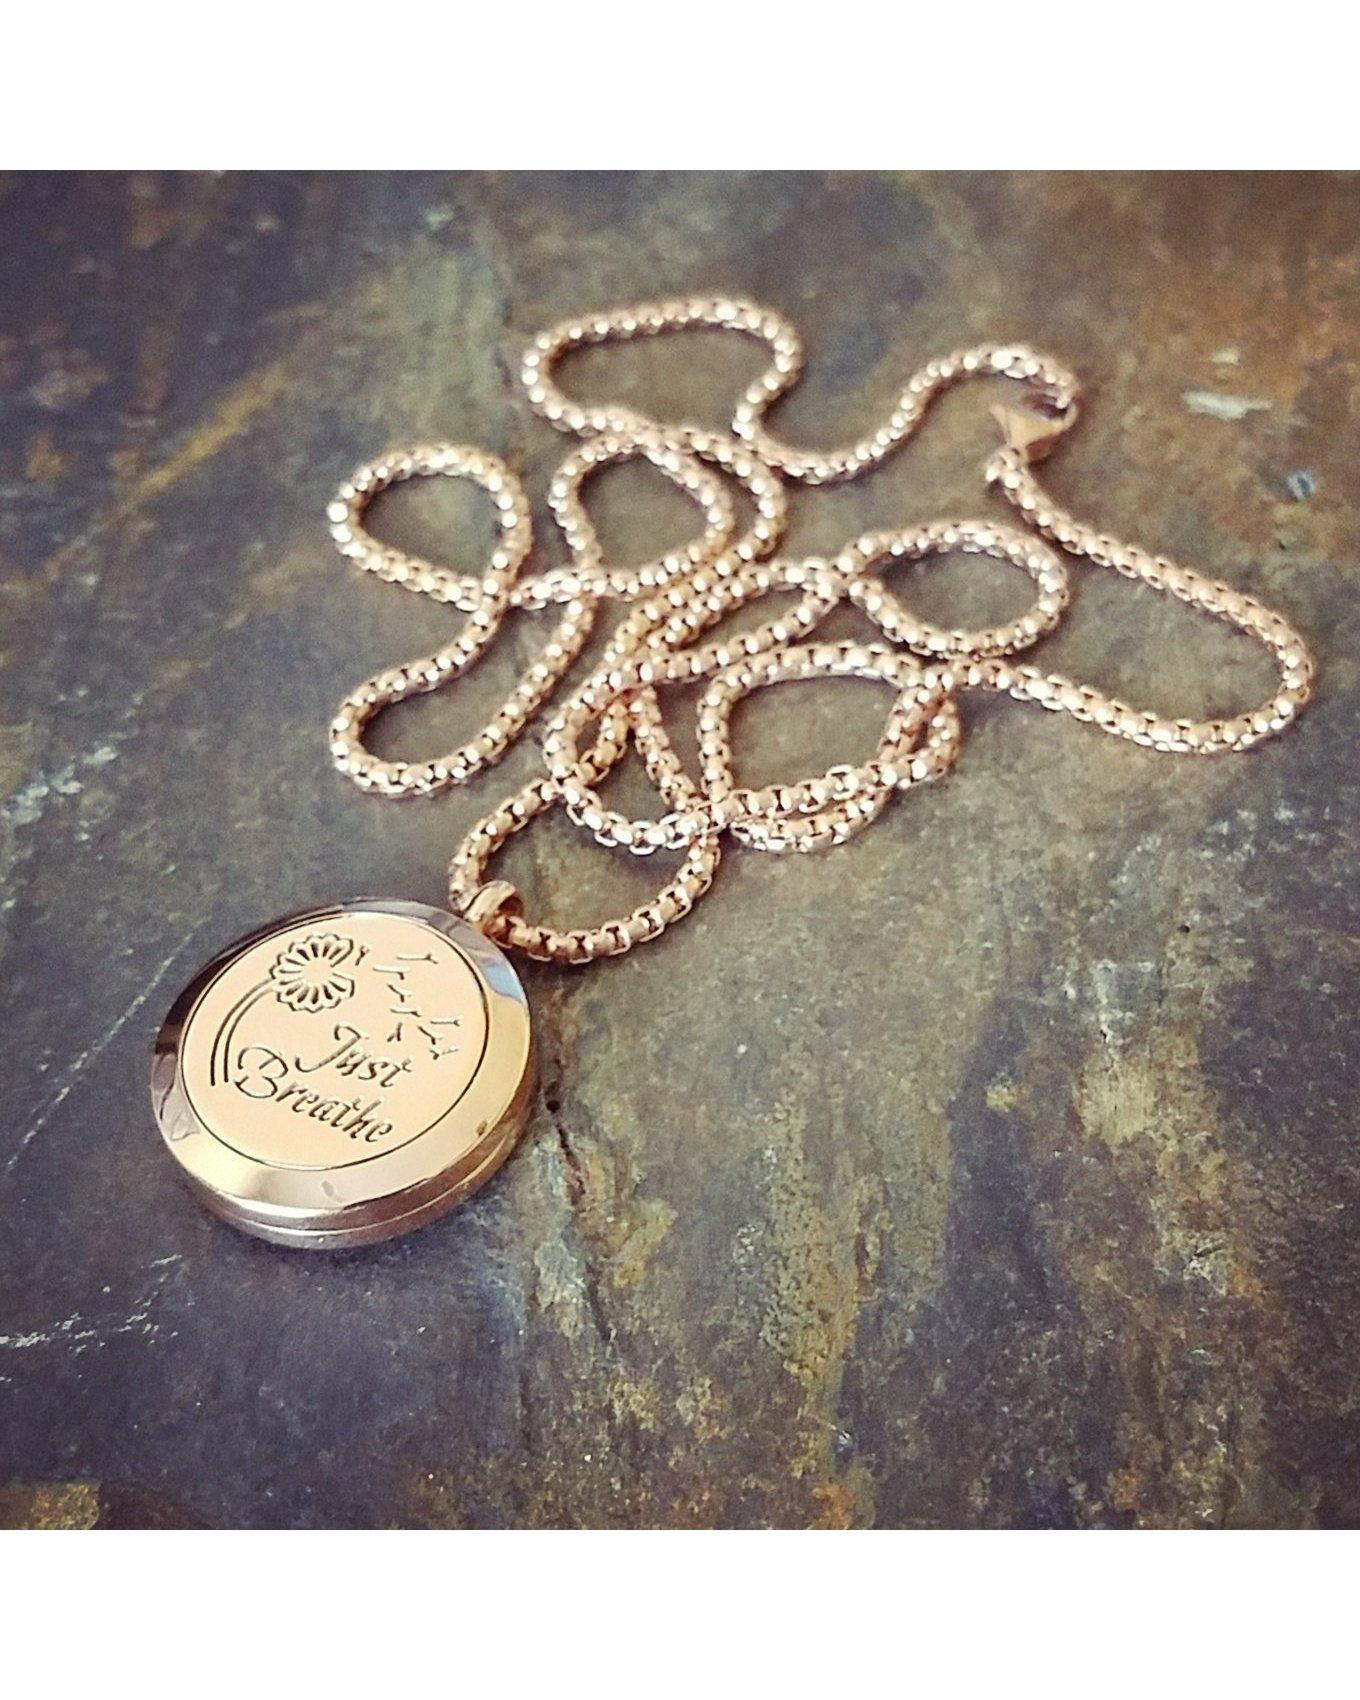 EE Exclusive **Just Breathe** 25mm 316L Stainless Steel with Rose Gold Overlay Essential Oil Diffuser Locket Necklace S009 - Essentially Elegant